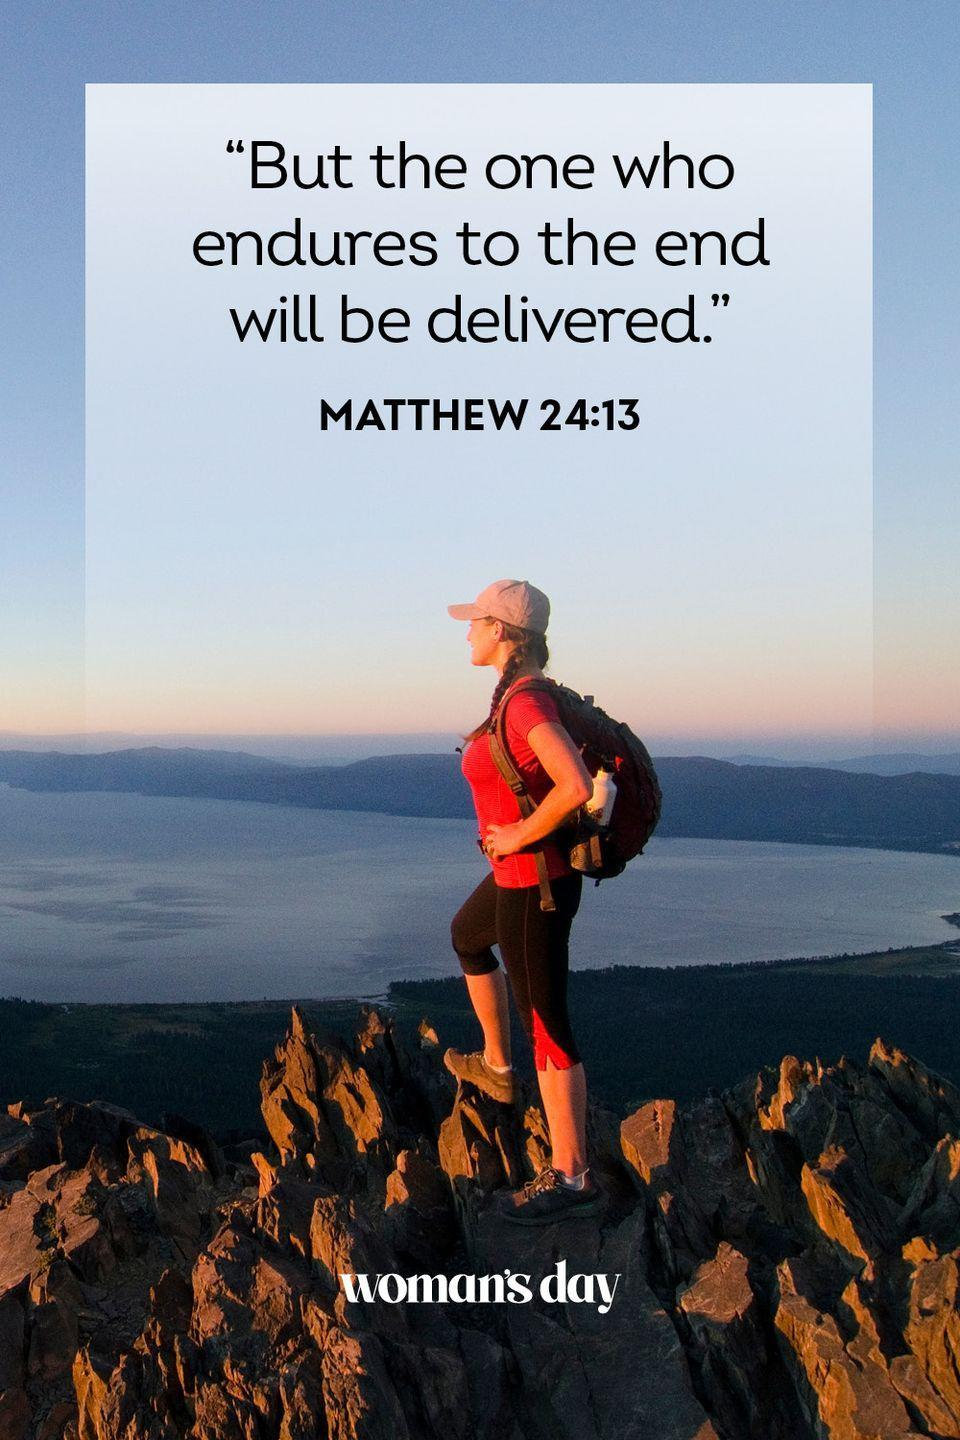 """<p>""""But the one who endures to the end will be delivered."""" — Matthew 24:13<strong><br></strong></p><p><strong>The Good News: </strong>If we persist in our love for God and what he wants from us, we will reap the most benefits from our lives and beyond.</p><p><strong>__________________________________________________</strong></p><p><br><em>Want more Woman's Day? </em><a href=""""https://subscribe.hearstmags.com/subscribe/womansday/253396?source=wdy_edit_article"""" rel=""""nofollow noopener"""" target=""""_blank"""" data-ylk=""""slk:Subscribe to Woman's Day"""" class=""""link rapid-noclick-resp""""><em>Subscribe to Woman's Day</em></a><em> today and get </em><strong><em>73% off your first 12 issues</em></strong><em>. And while you're at it, </em><a href=""""https://link.womansday.com/join/3o9/wdy-newsletter"""" rel=""""nofollow noopener"""" target=""""_blank"""" data-ylk=""""slk:sign up for our FREE newsletter"""" class=""""link rapid-noclick-resp""""><em>sign up for our FREE newsletter</em></a><em> for even more of the Woman's Day content you want.</em><br><br><br></p>"""